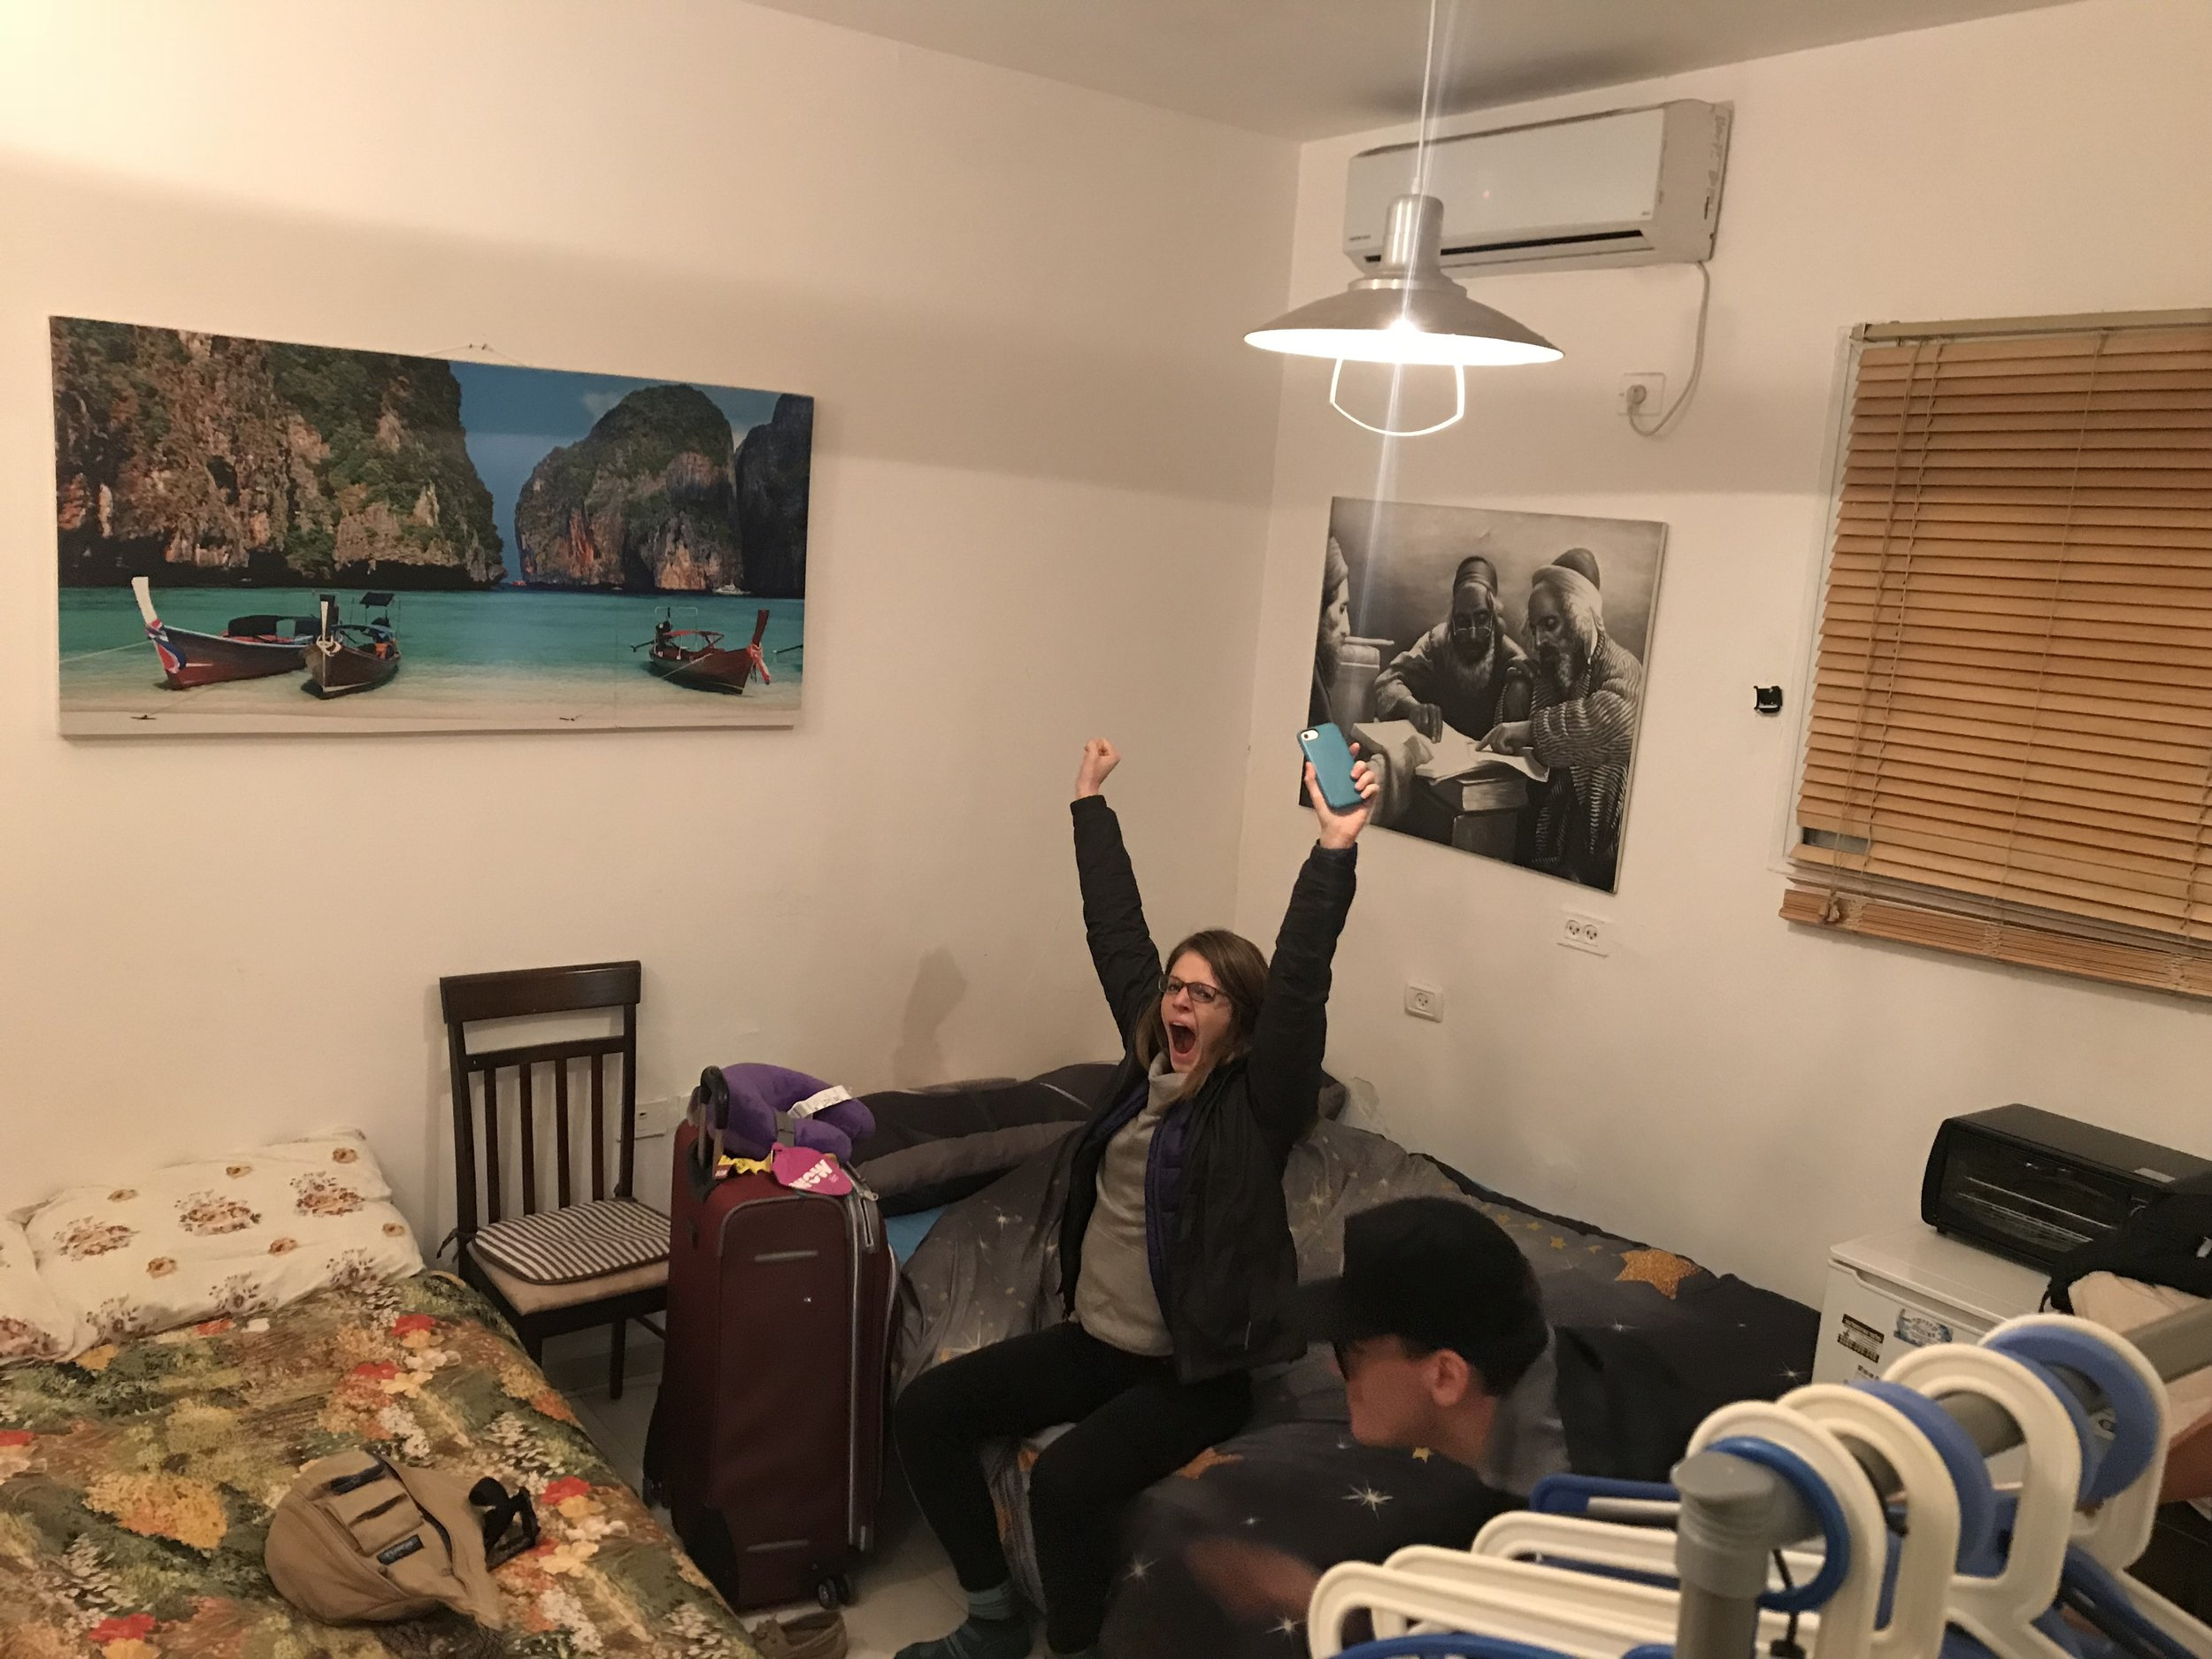 Picture of Steph yawning in our Airbnb